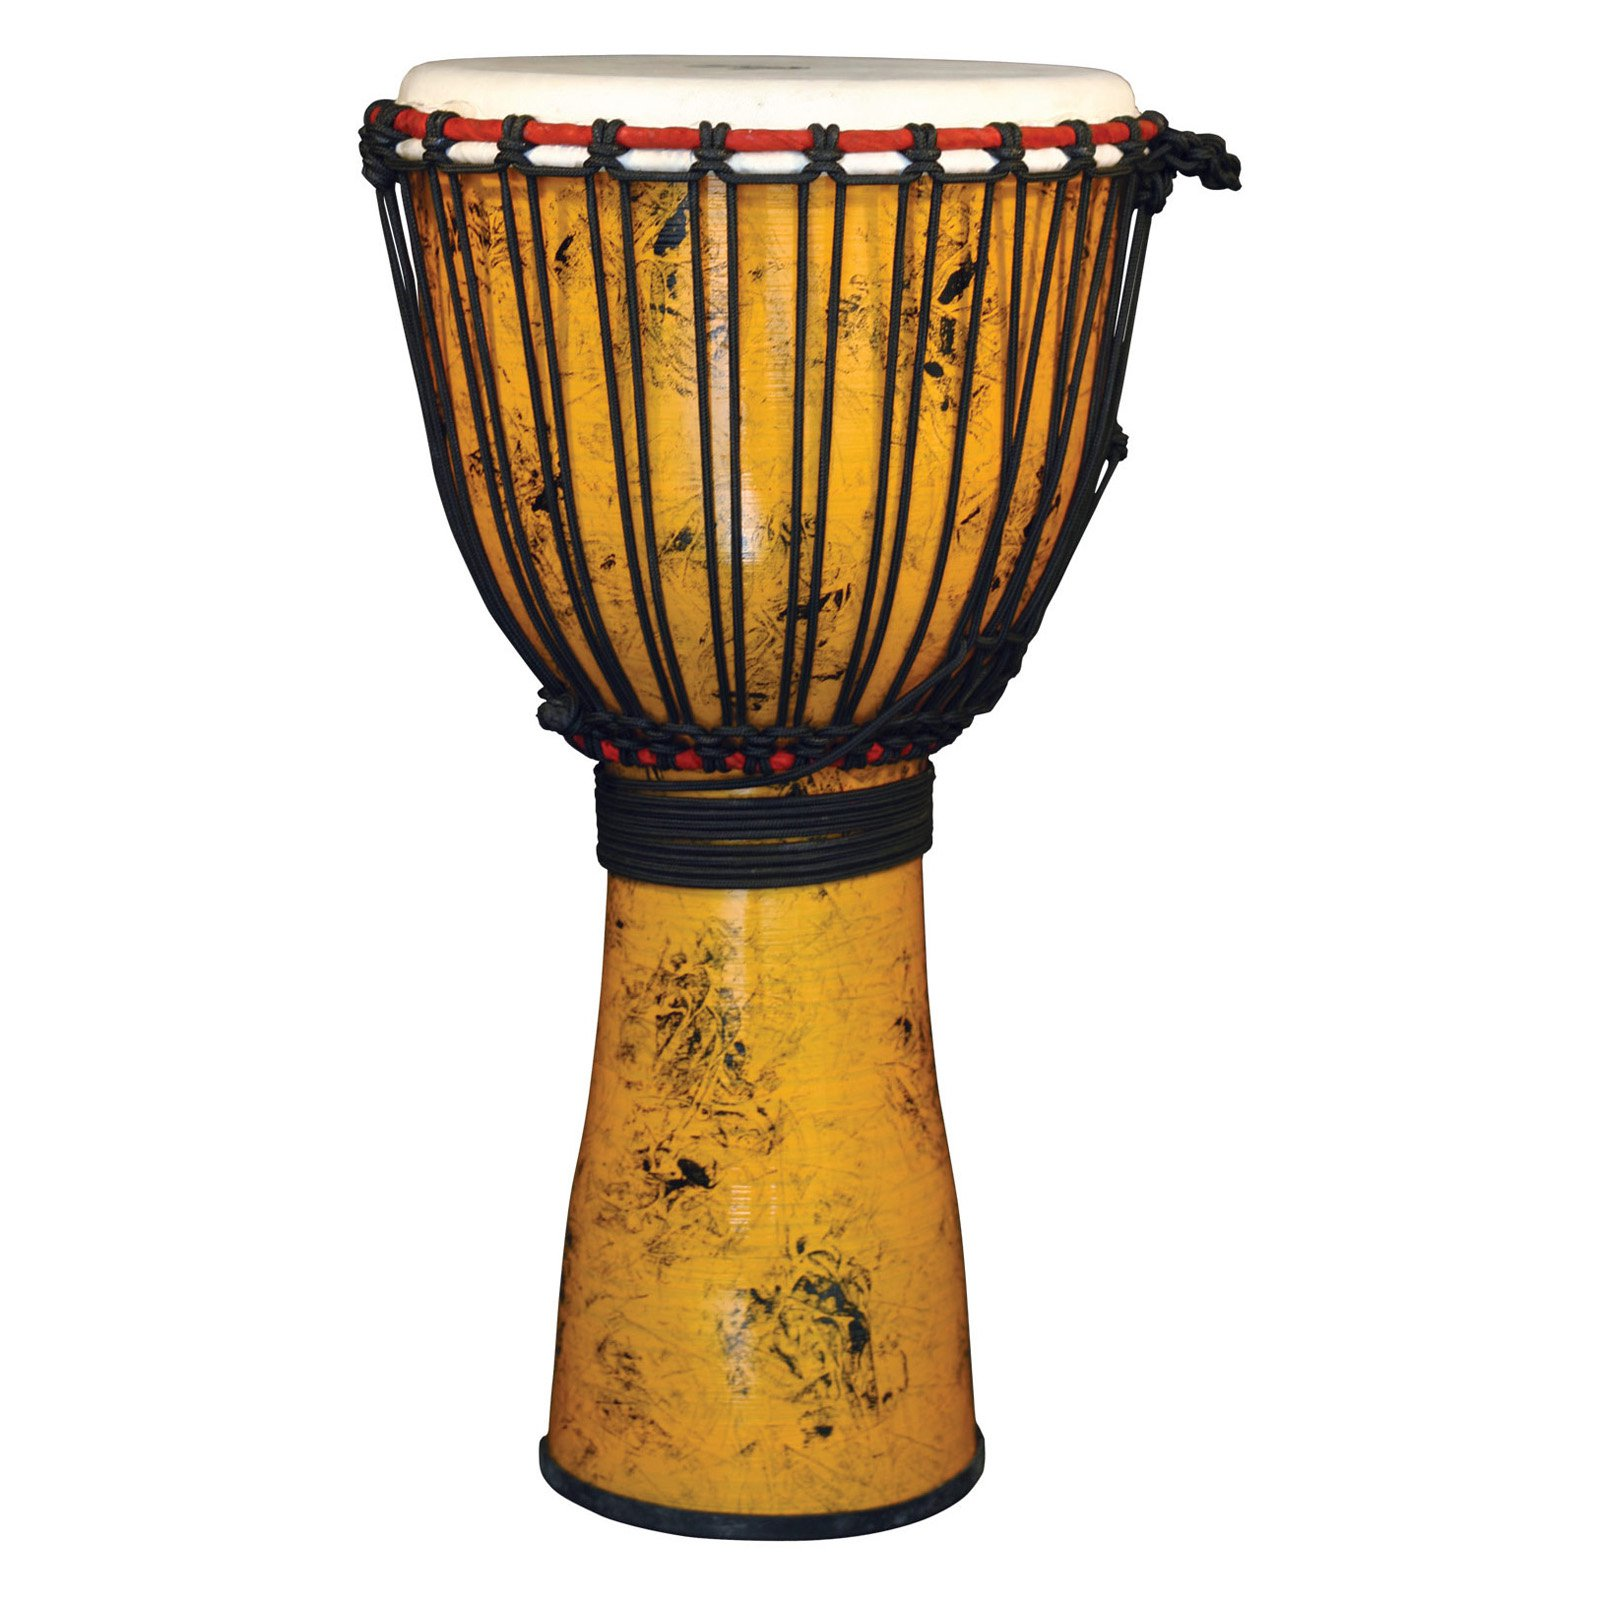 X8 Drums Urban Beat Djembe